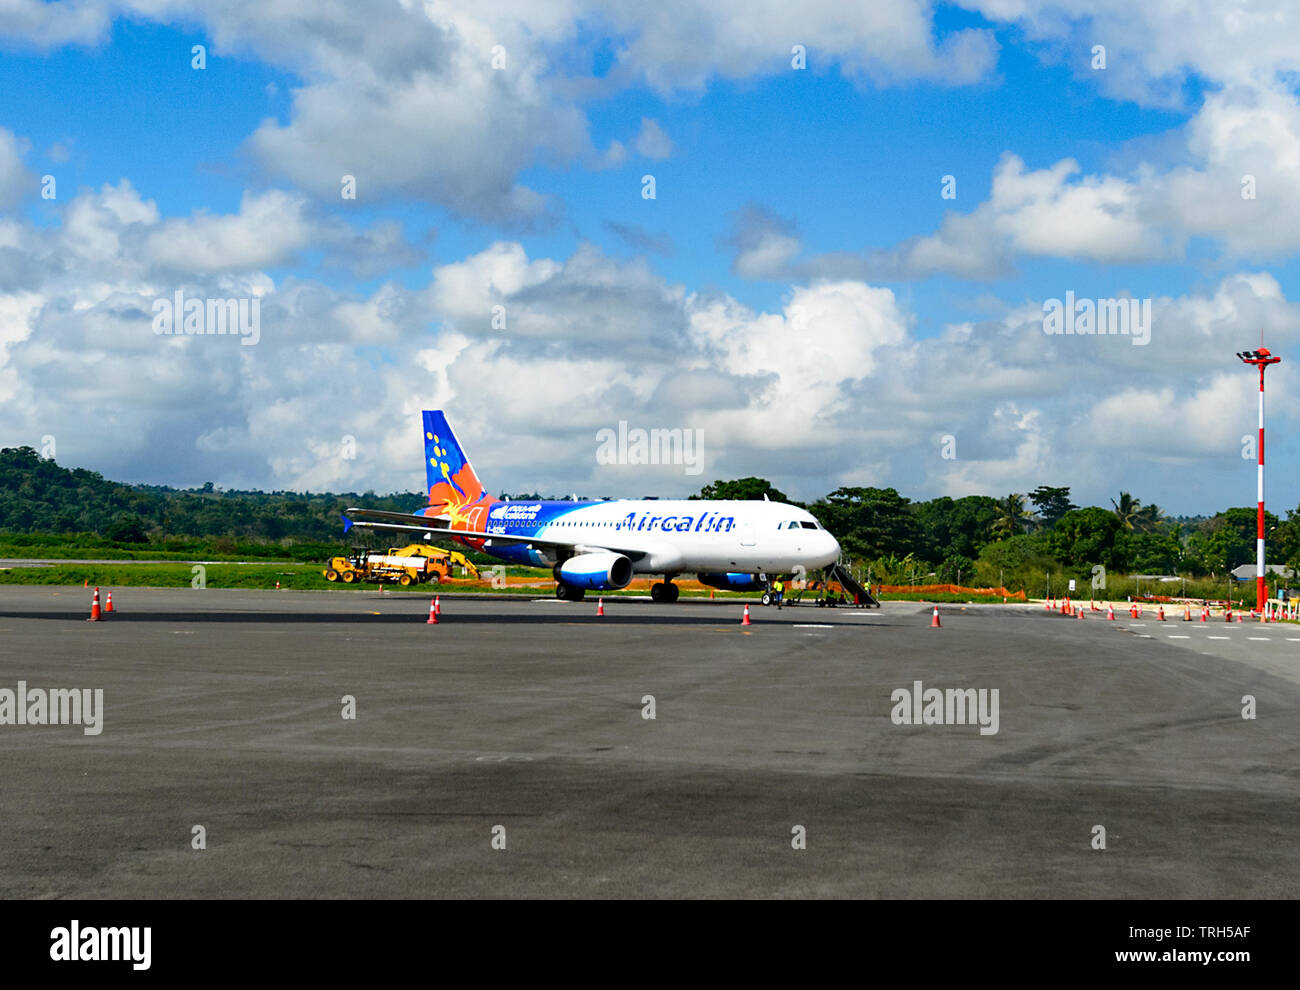 An Airbus A320-200 from Aircalin, the New Caledonia airline, on the apron at Port Vila Airport, Vanuatu - Stock Image